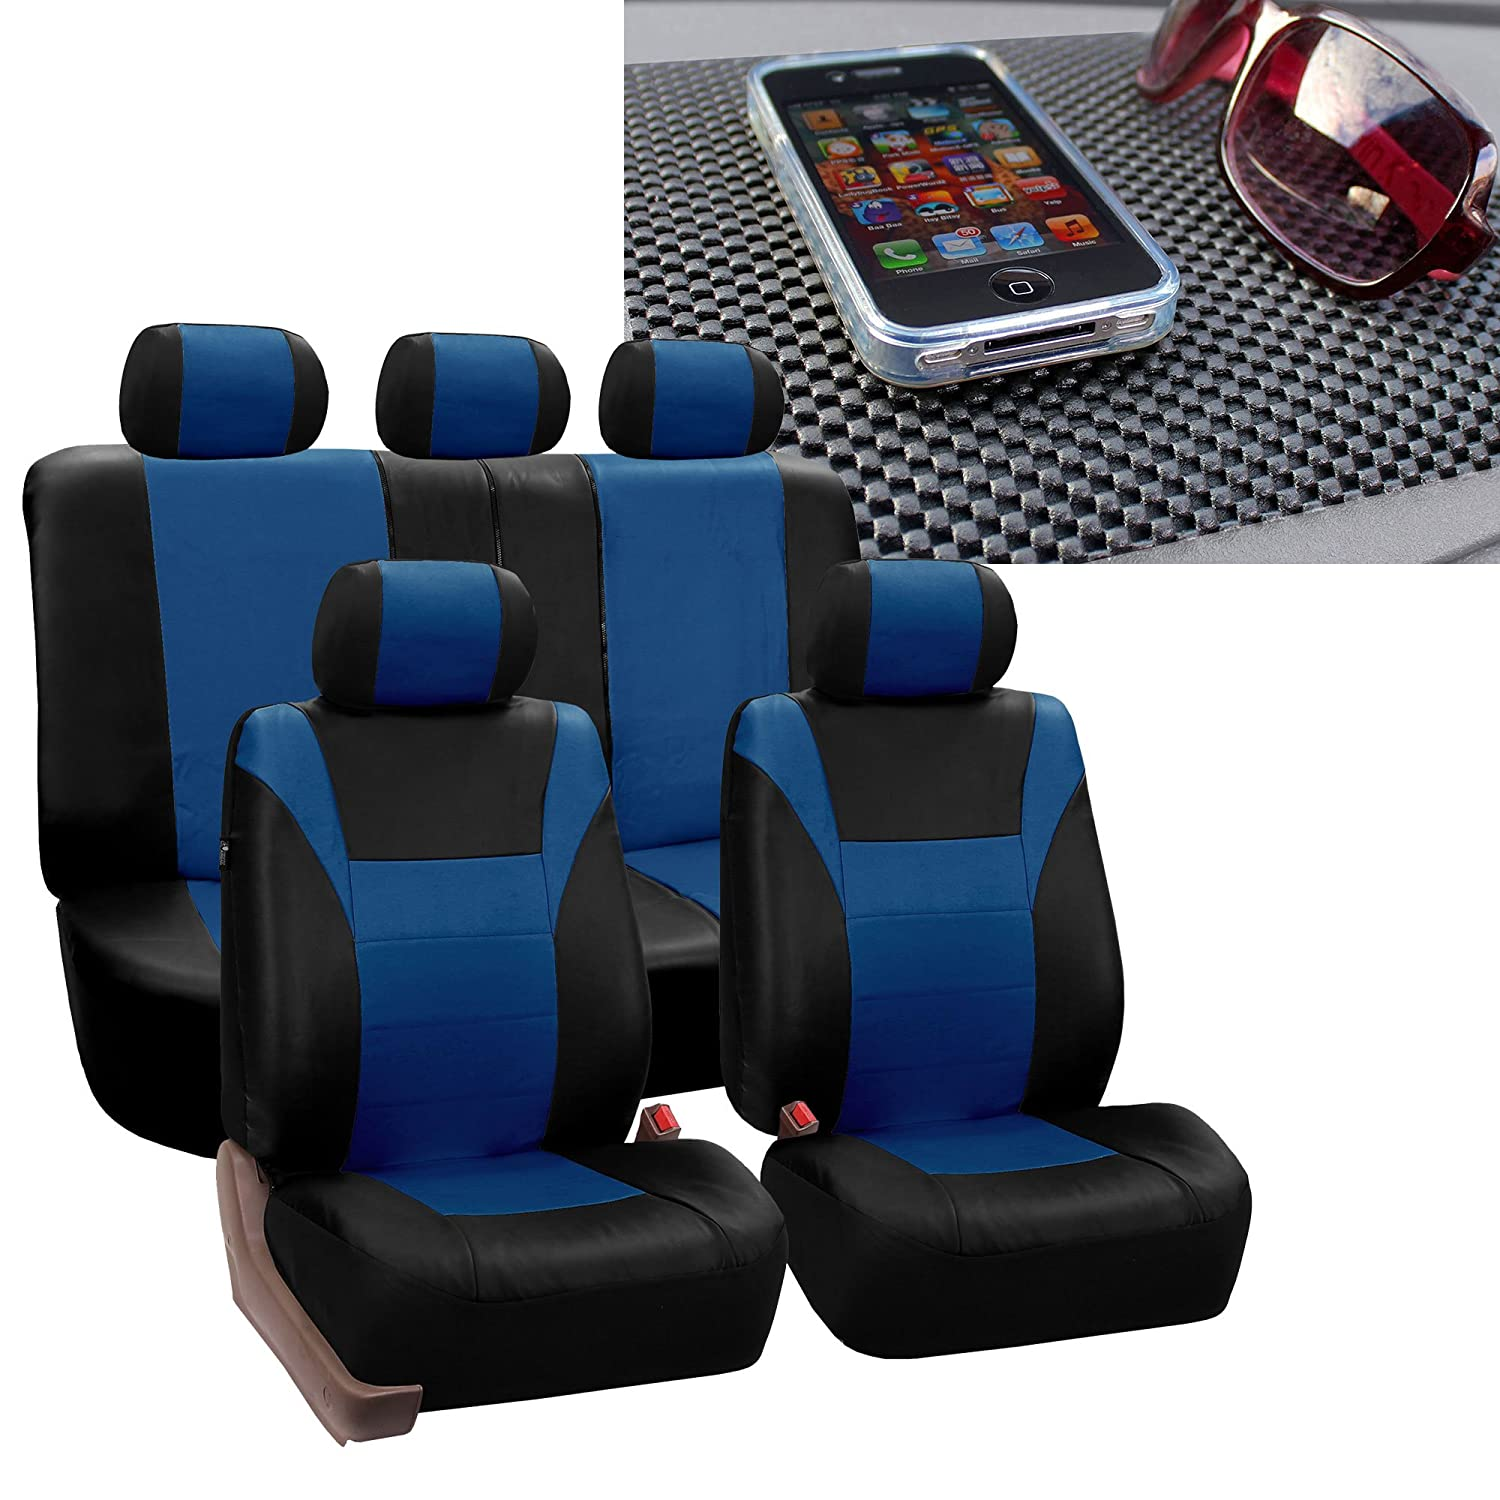 FH Group FH-PU003115 Racing PU Leather Car Full Set Blue/Black Seat Covers, Airbag Ready and Split w. FREE FH1002 Non-Slip Dash Pad- Fit Most Car, Truck, Suv, or Van